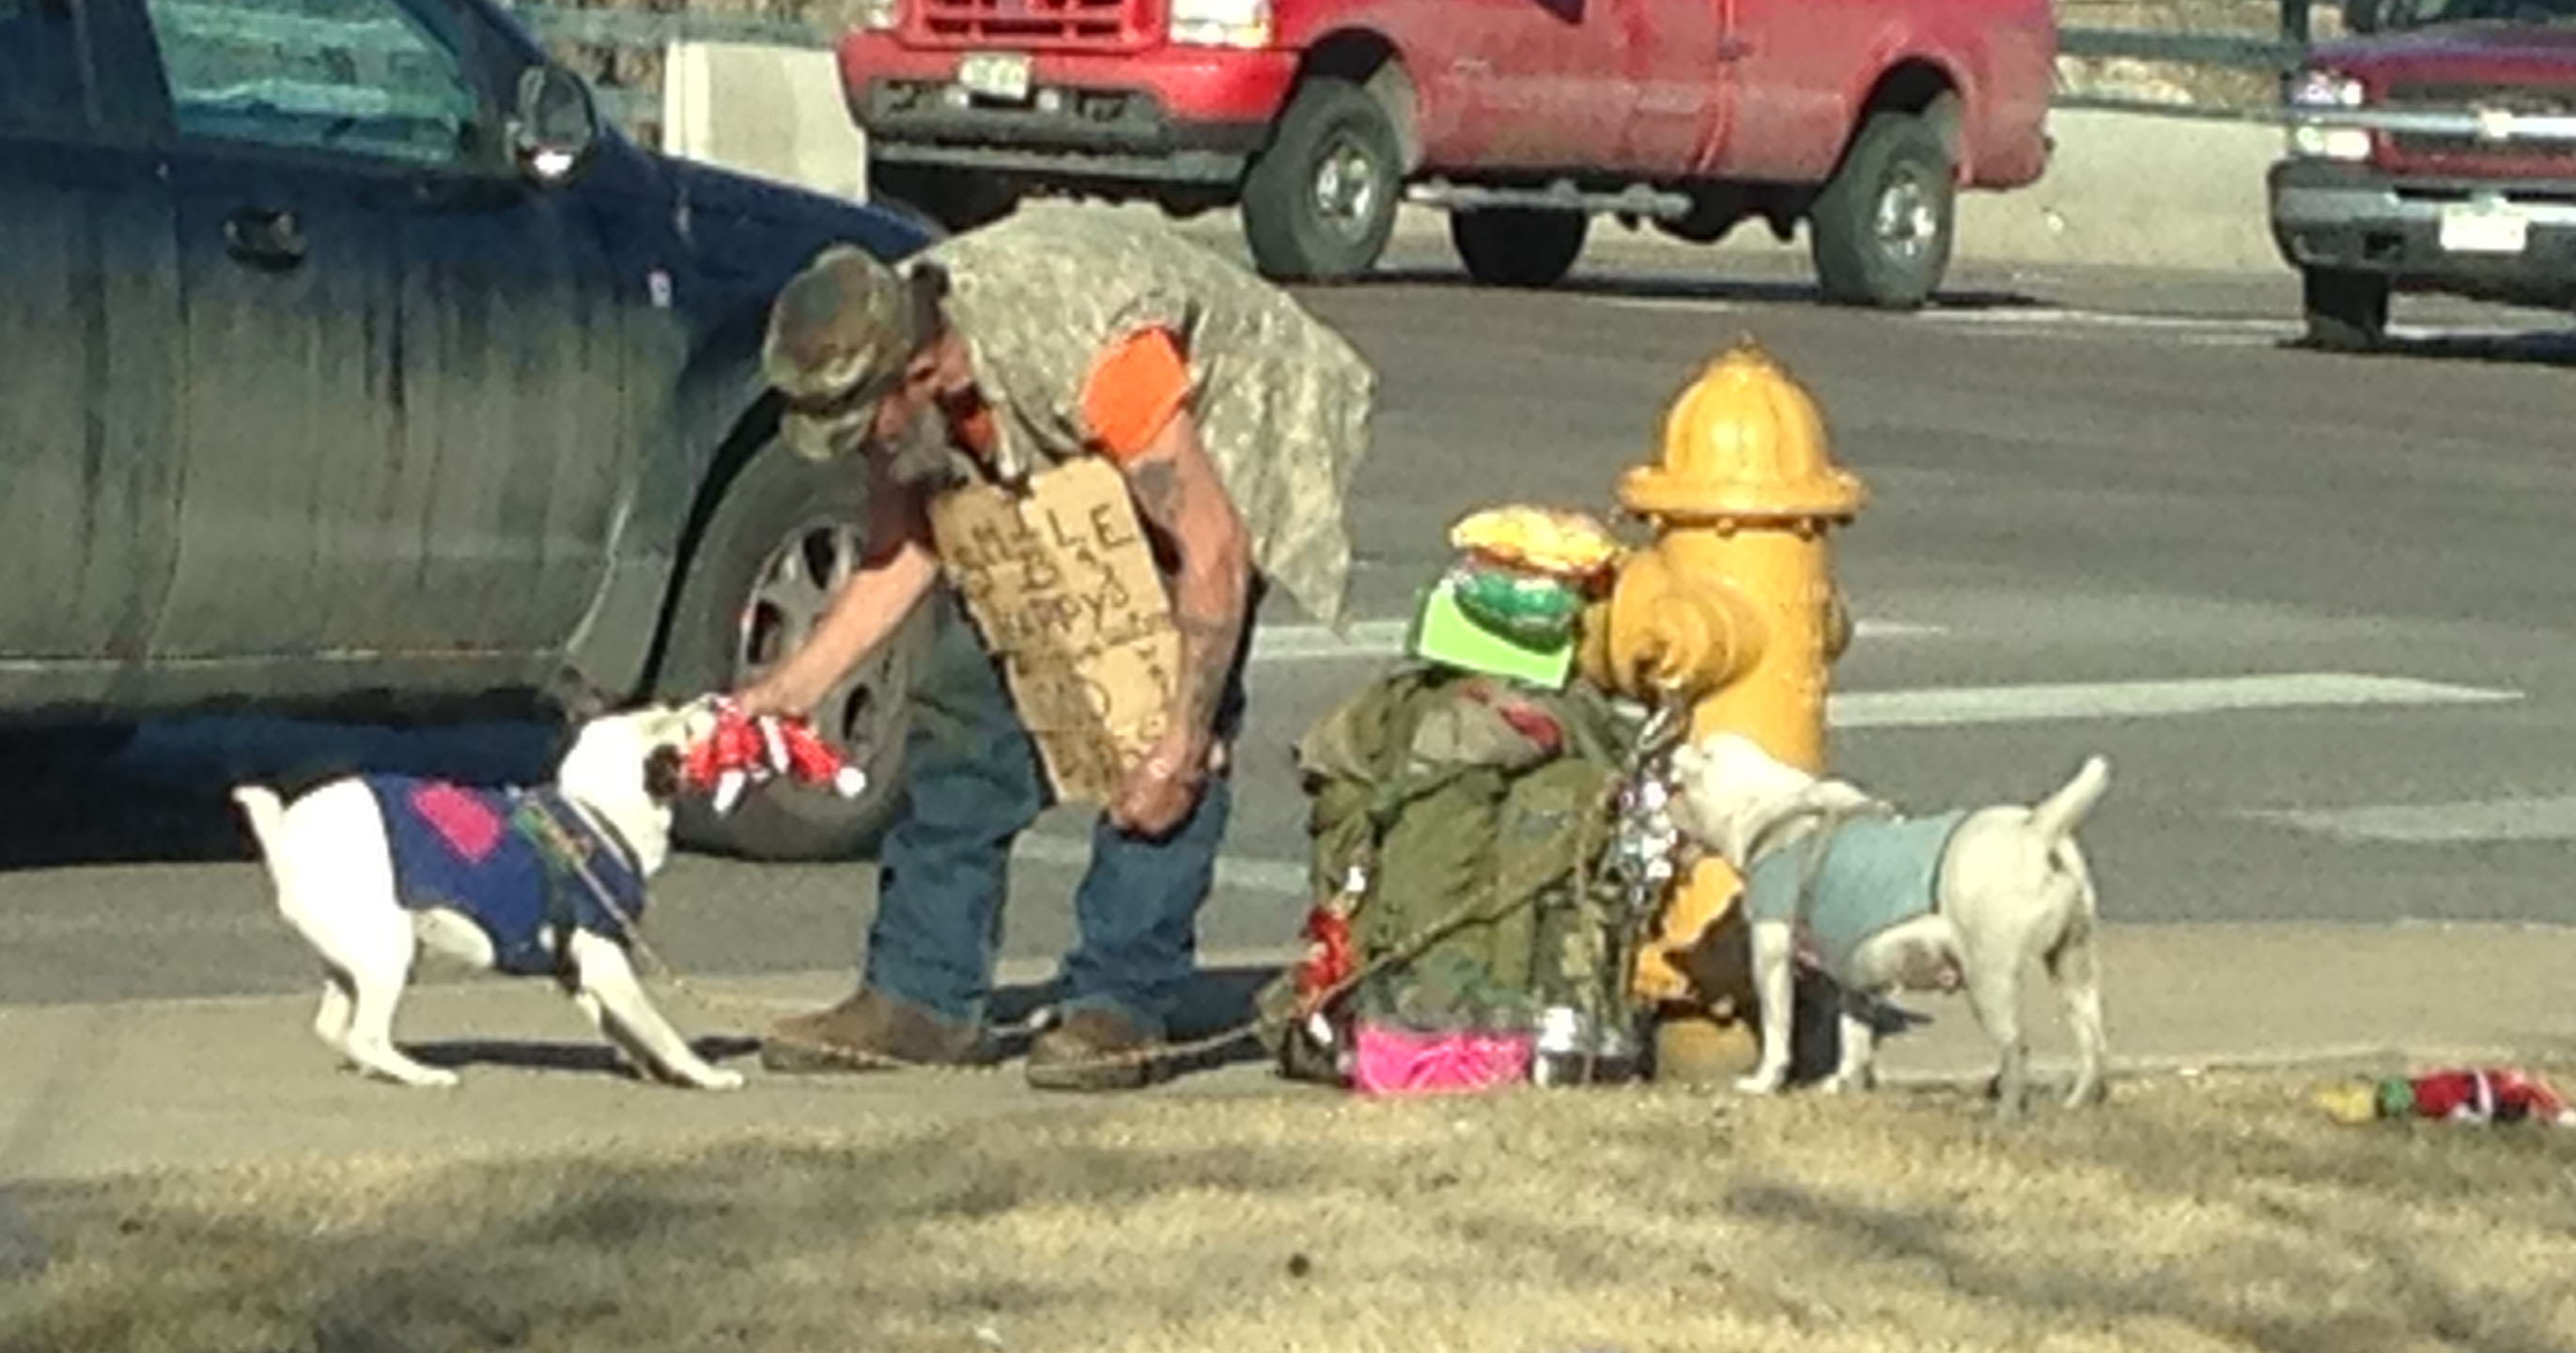 Homeless man and dogs